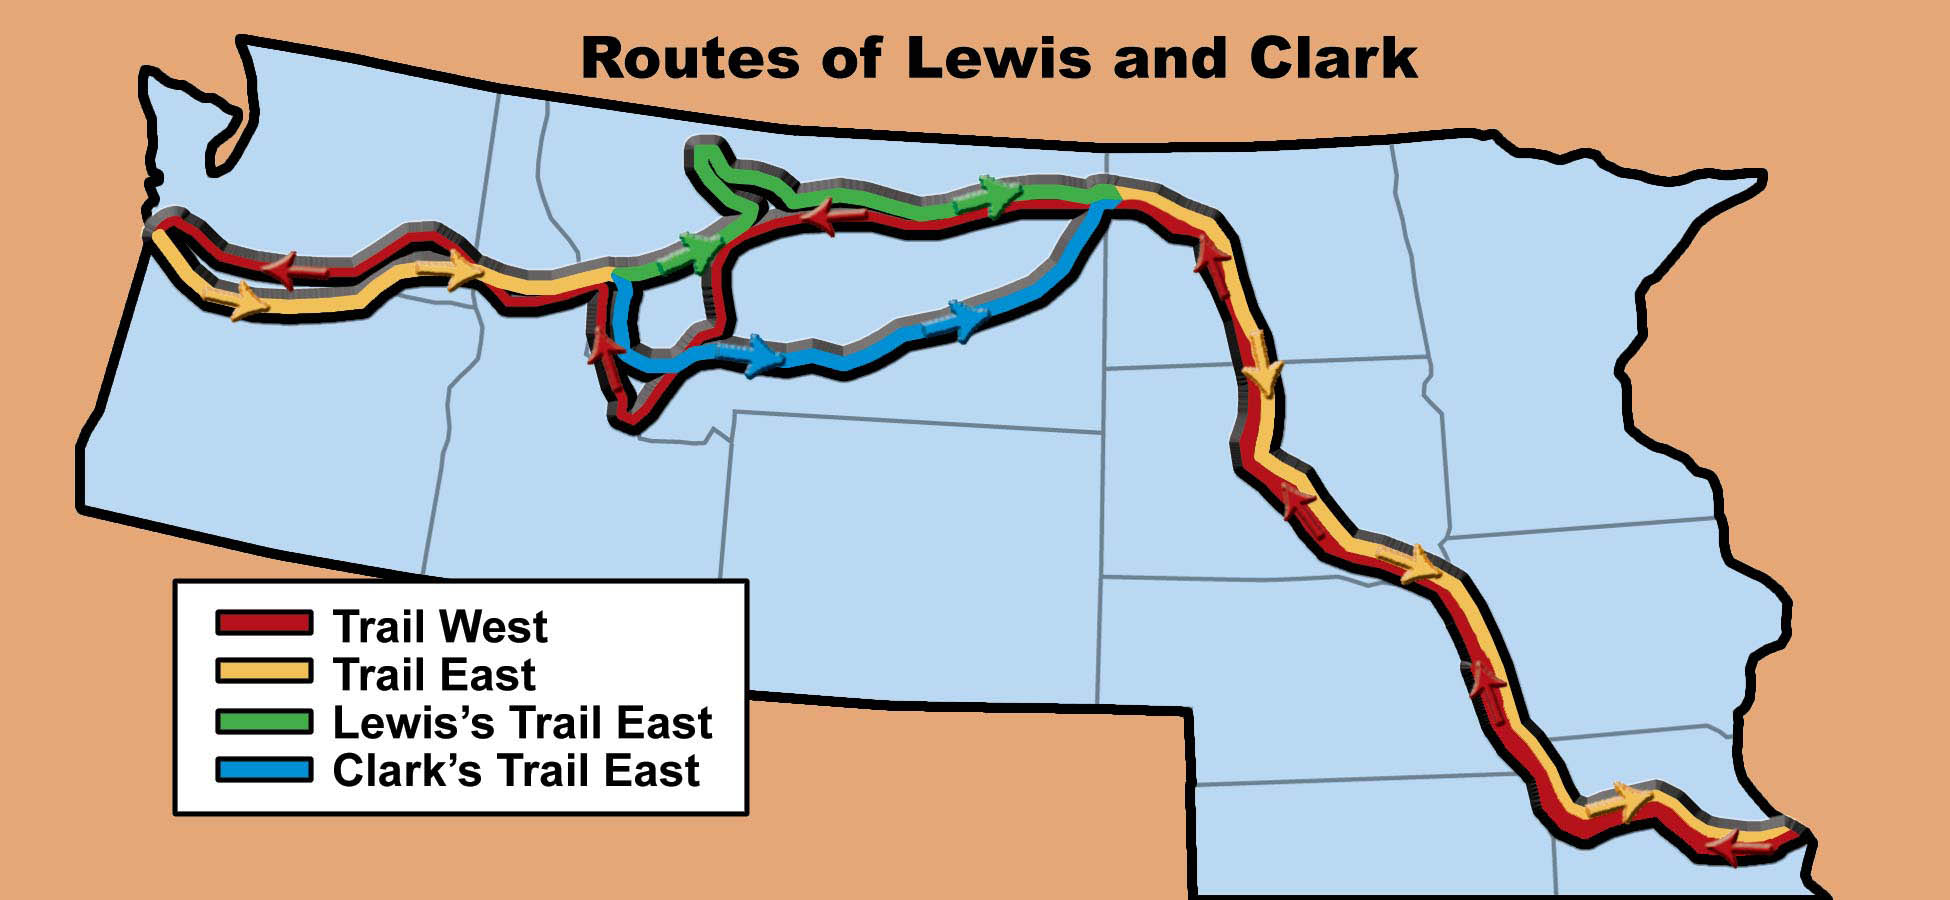 The routes taken by the Lewis and Clark Expedition